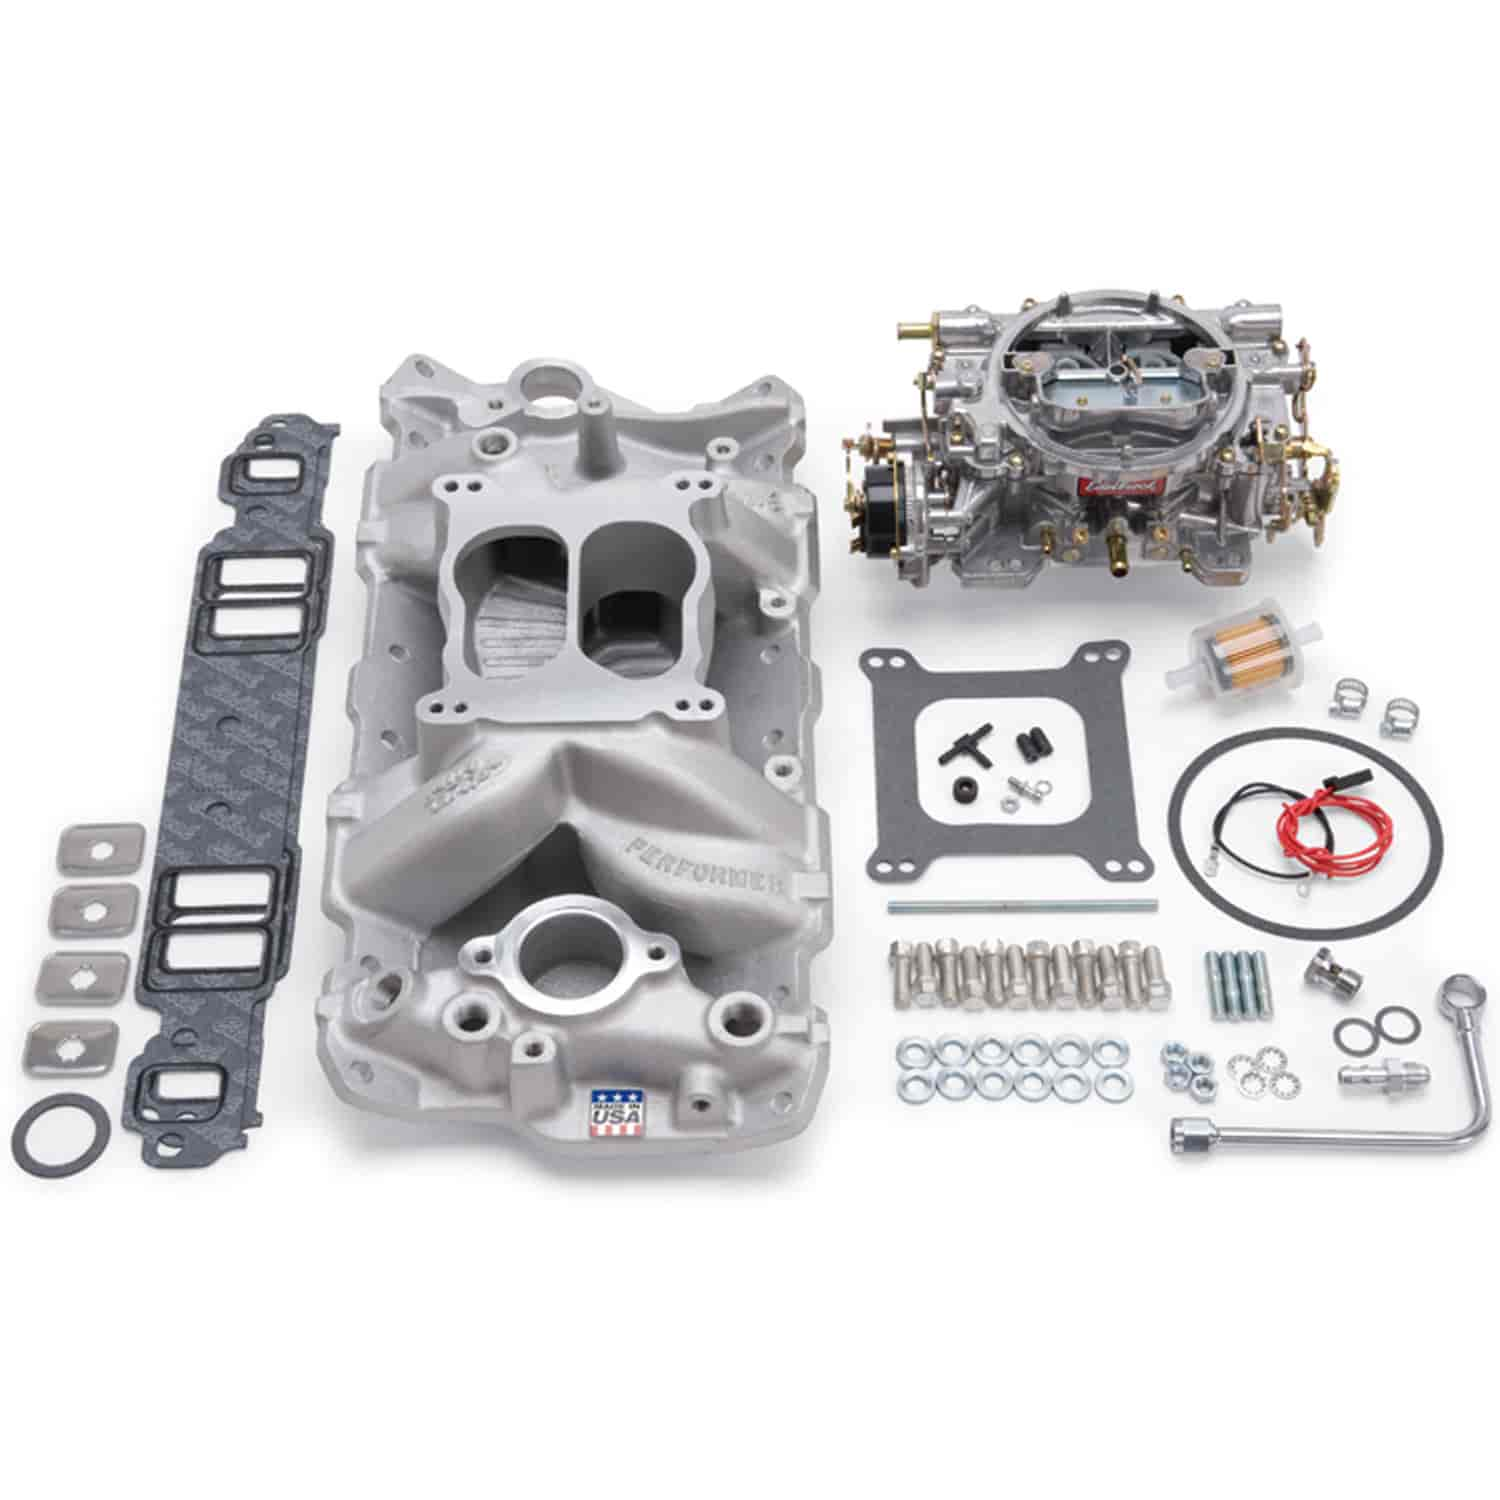 Edelbrock 2020 - Edelbrock Single-Quad Intake Manifold and Carb Kits